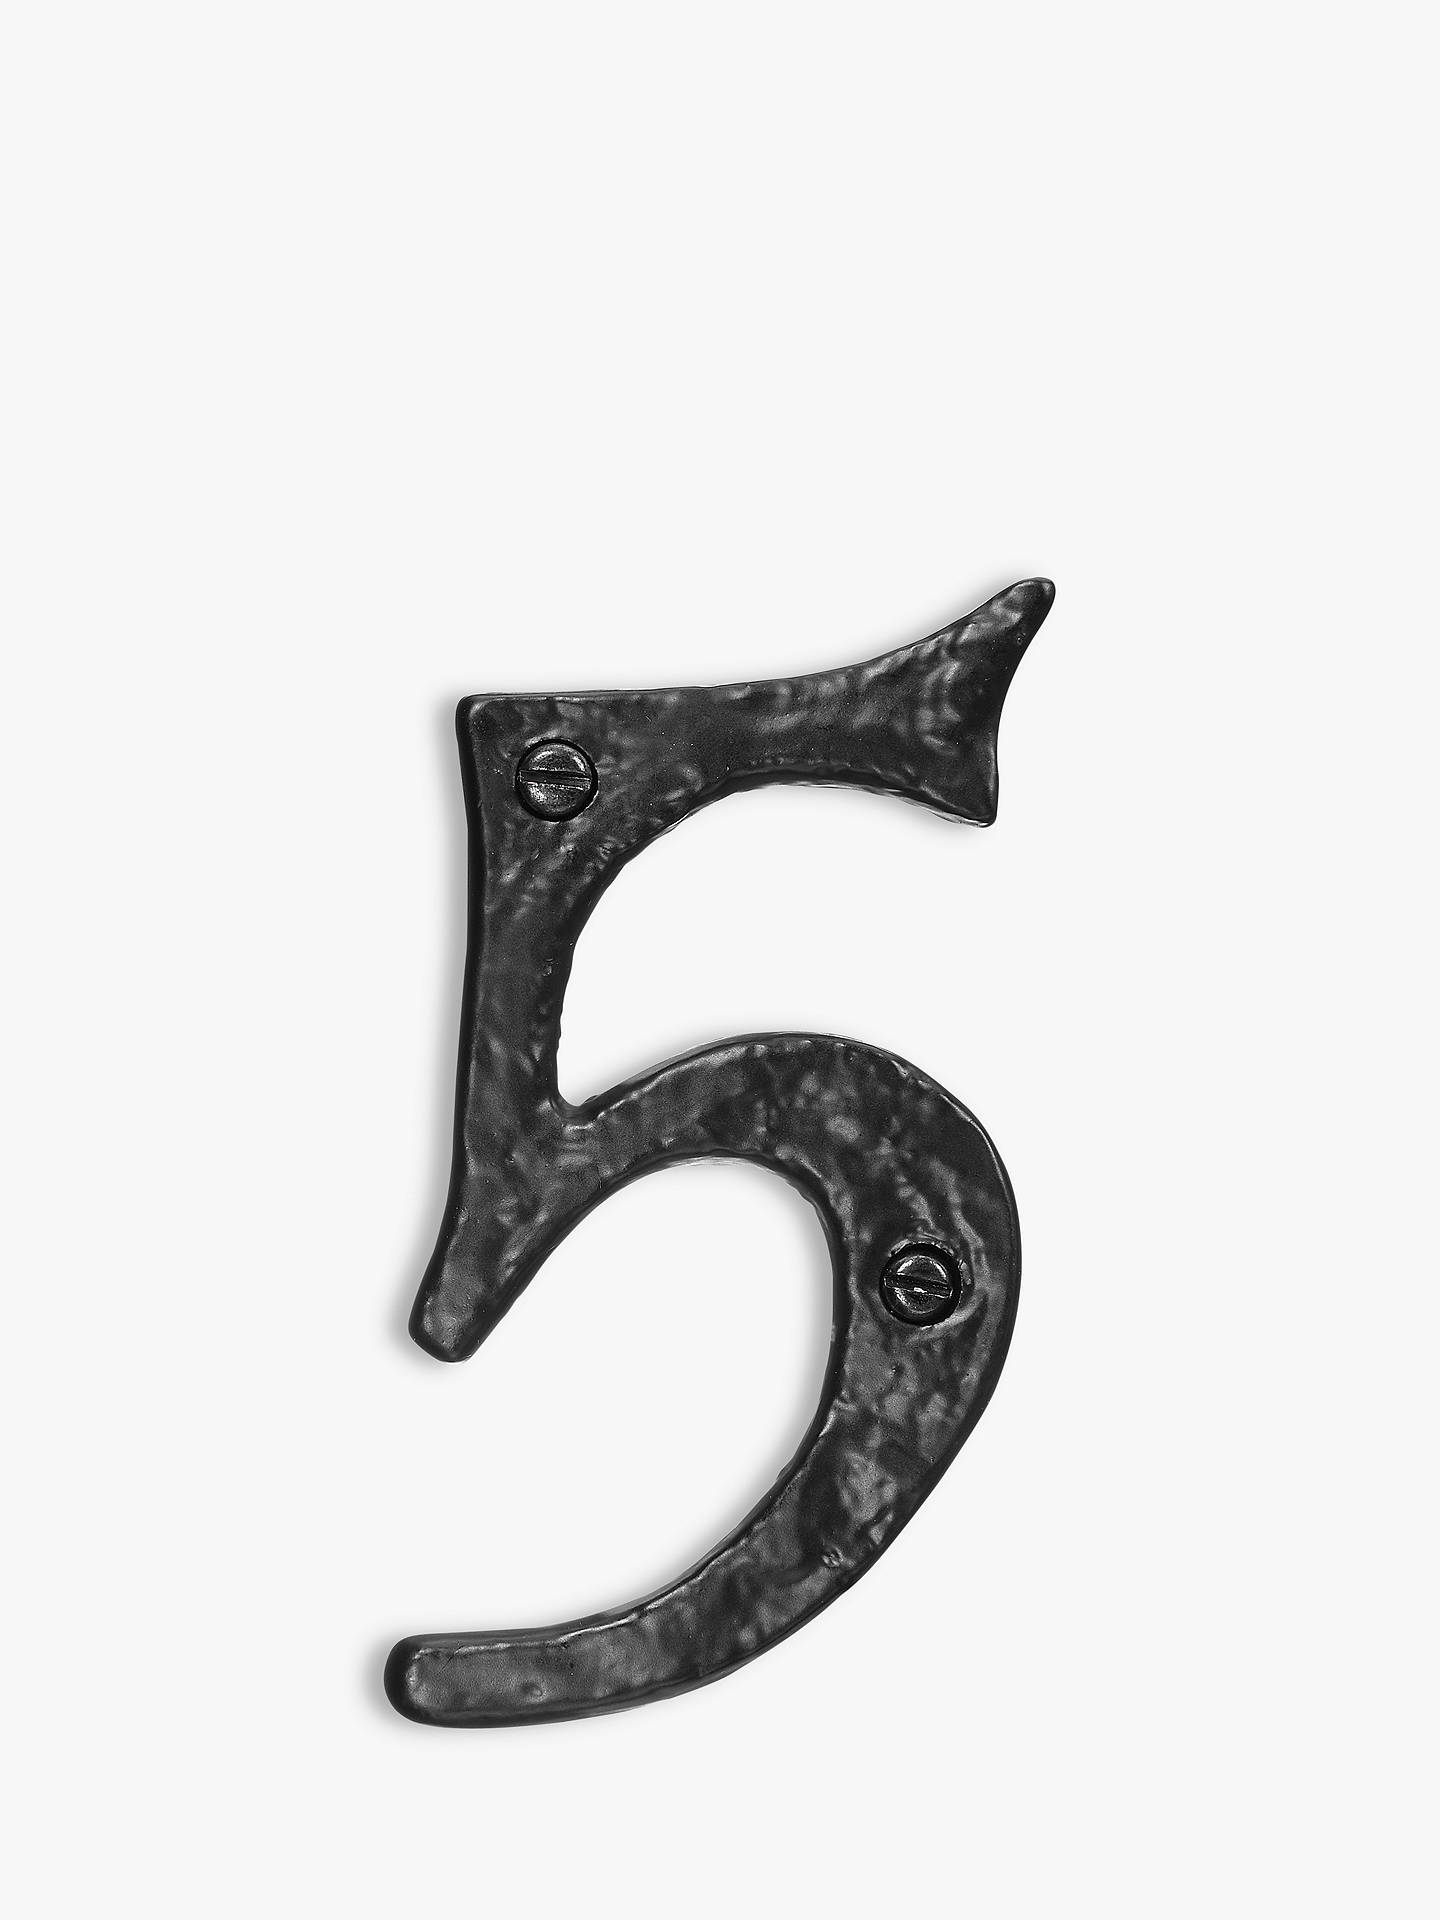 BuyJohn Lewis & Partners Wrought Iron Door 5 Numeral, Black Online at johnlewis.com